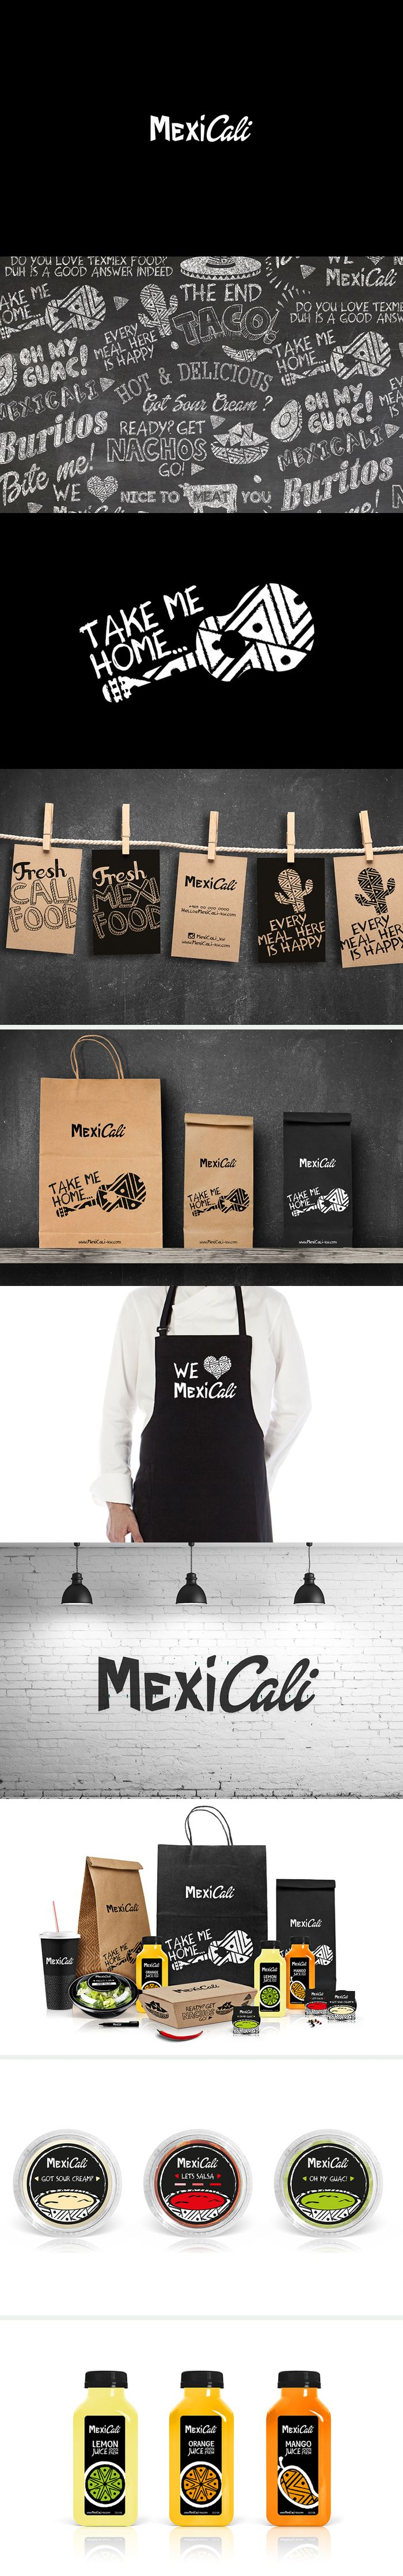 identity / mexiCali / restaurant / food